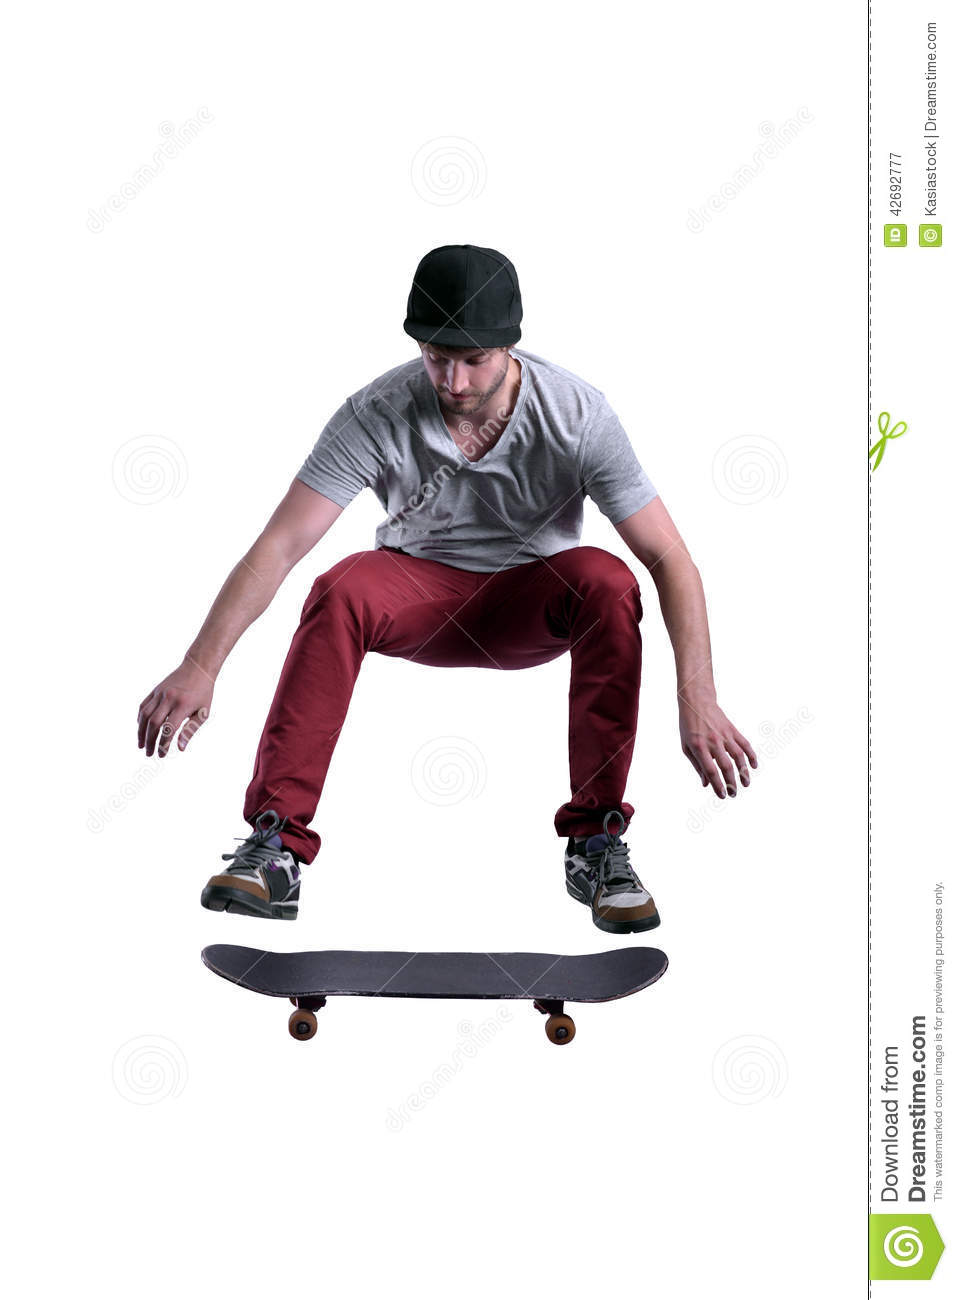 Skateboarder Jumping High Stock Image Image Of Athlete